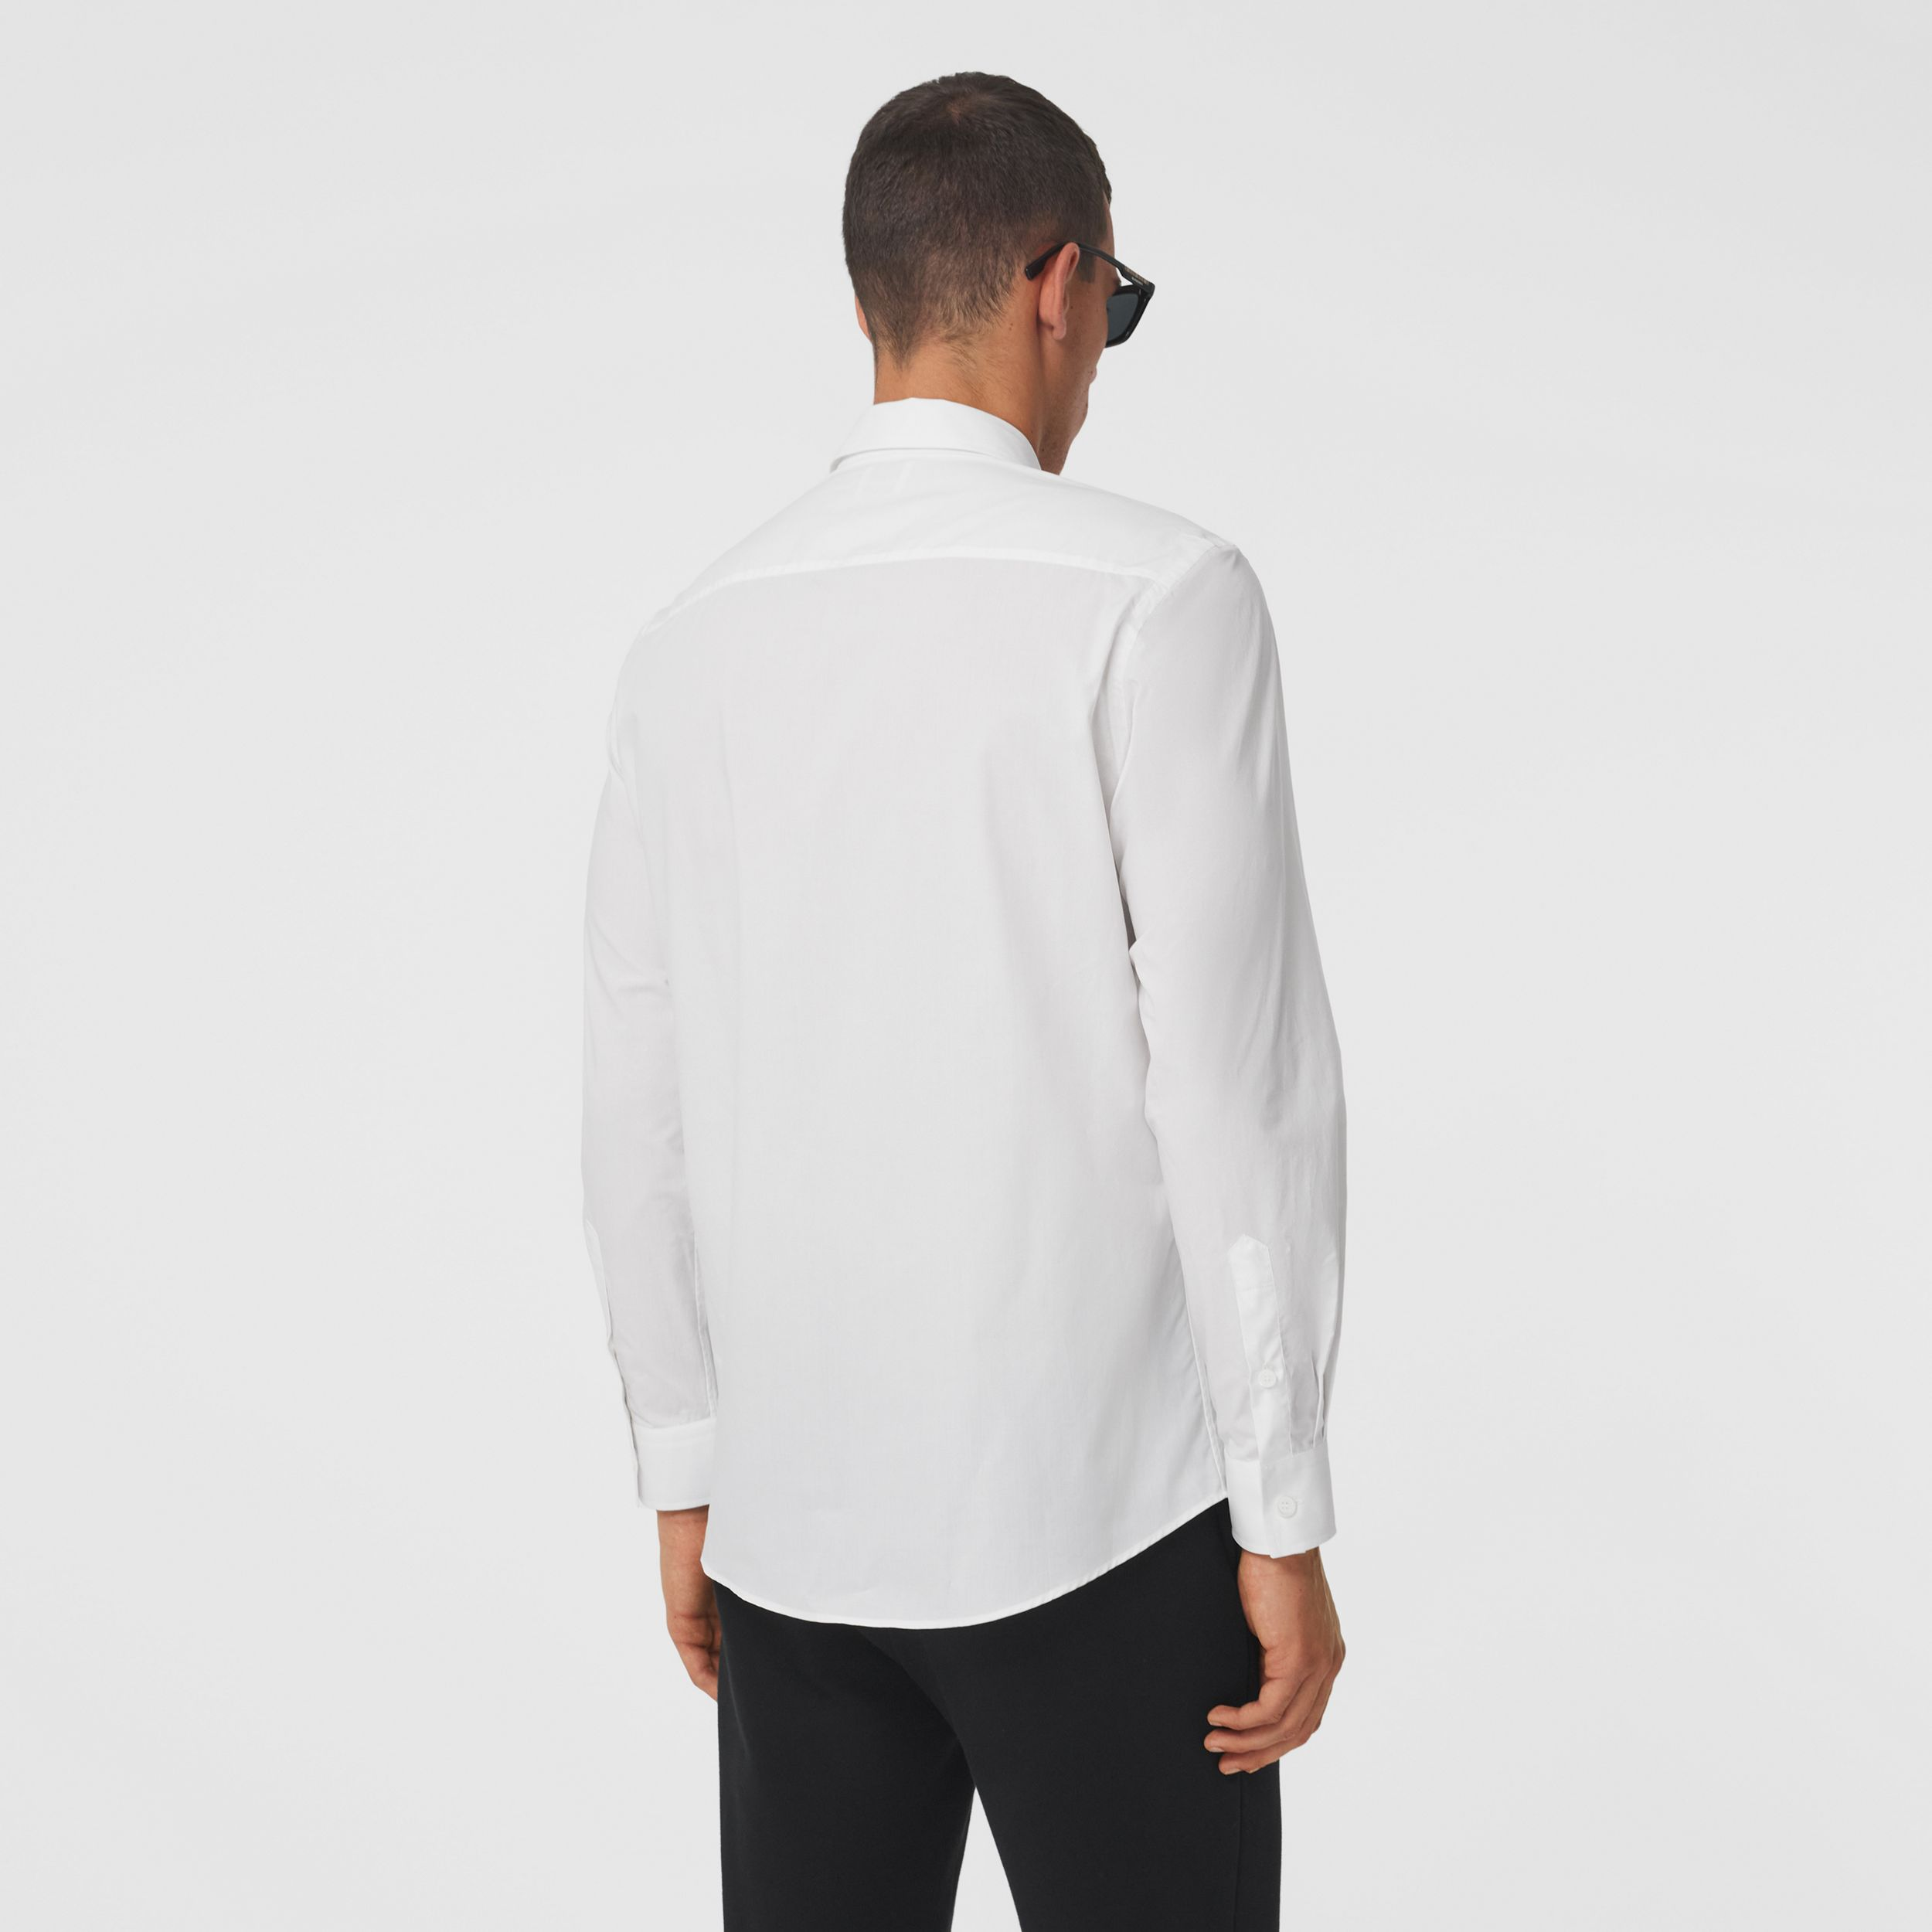 Logo Tape Cotton Shirt in White/black - Men | Burberry - 3